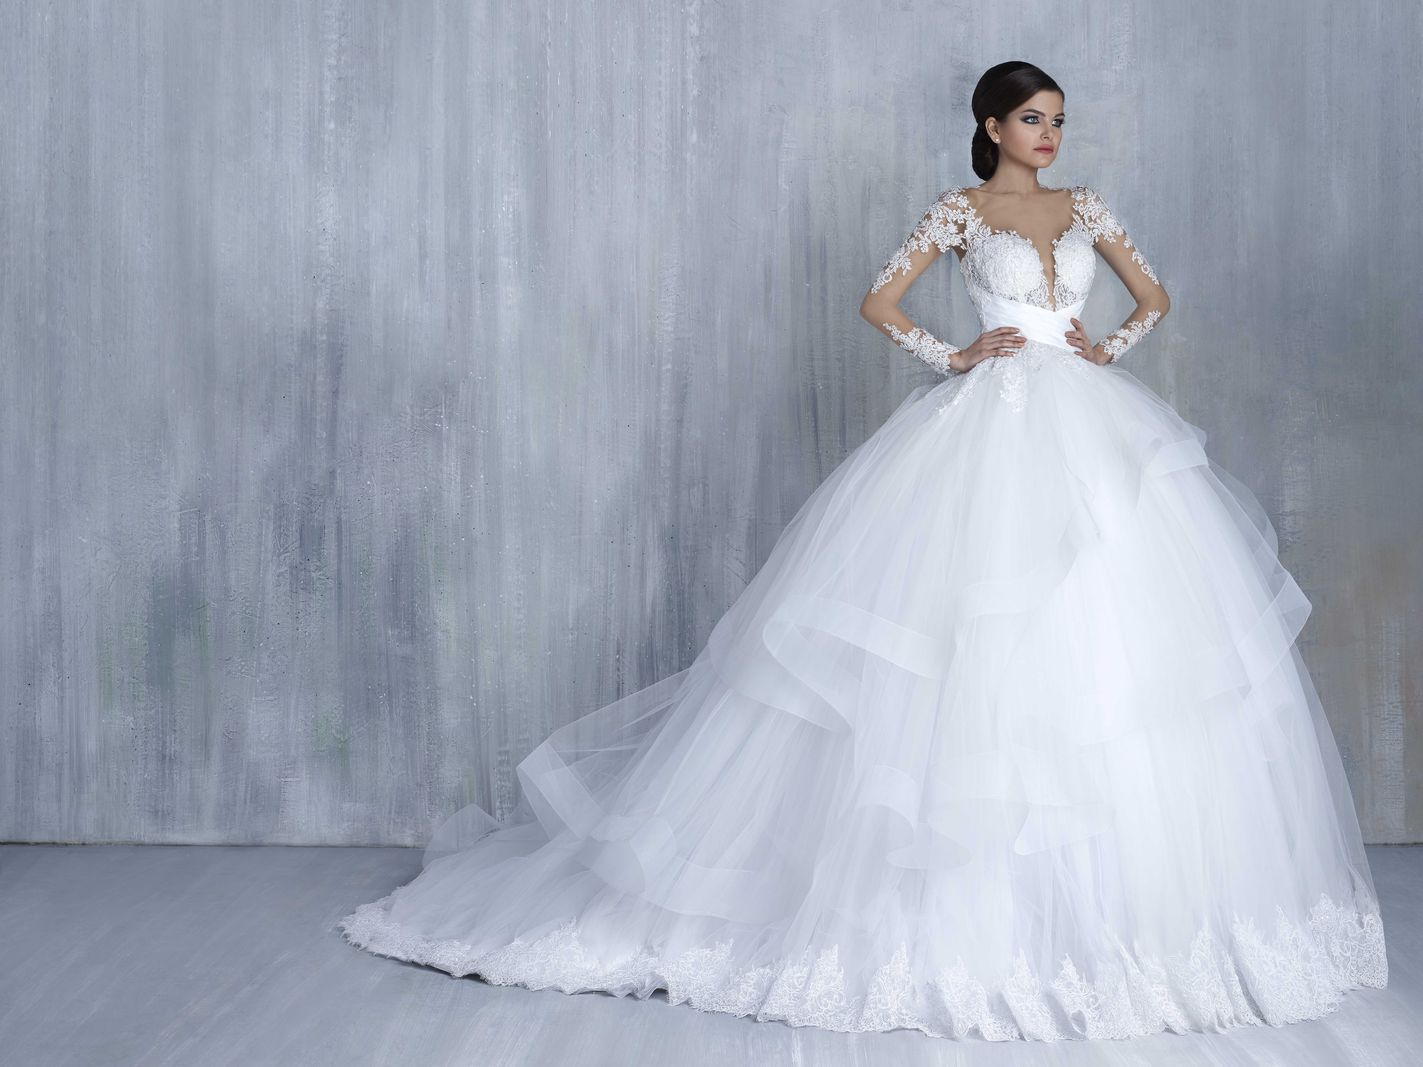 Timeless Bridal Spring/Summer 2016 Collection by Tony Chaaya